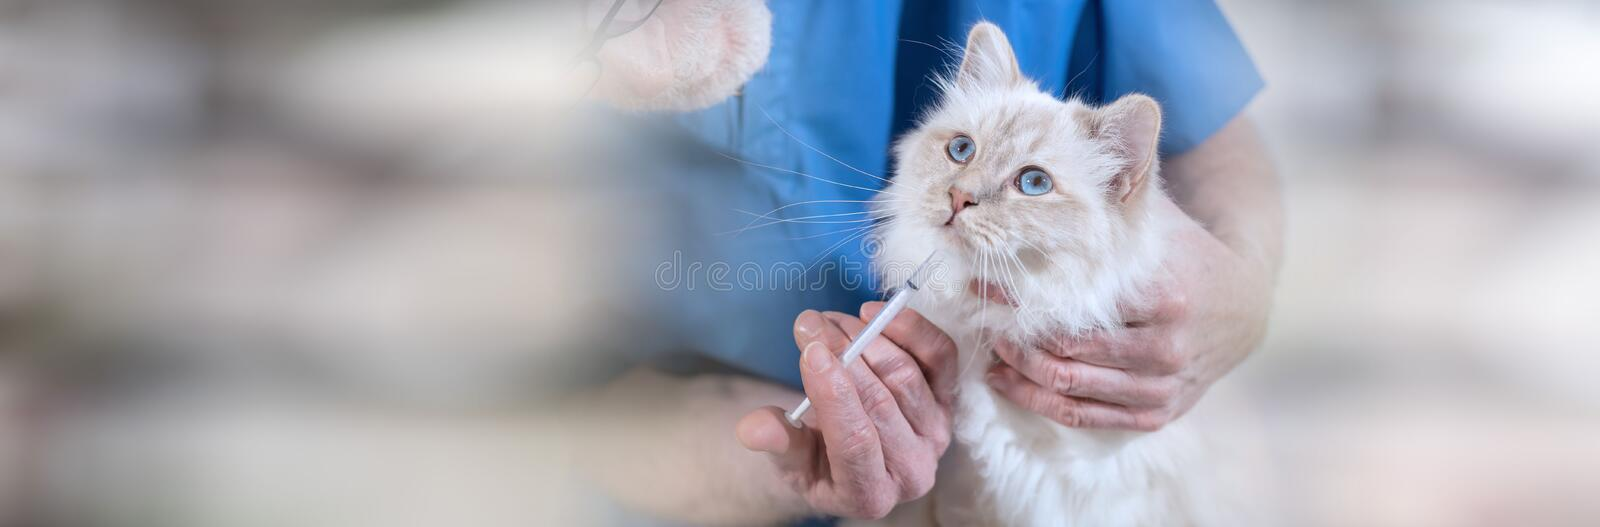 Veterinarian giving medication to a beautiful sacred cat of burma. panoramic banner. Veterinarian giving medication to a beautiful white sacred cat of burma stock images